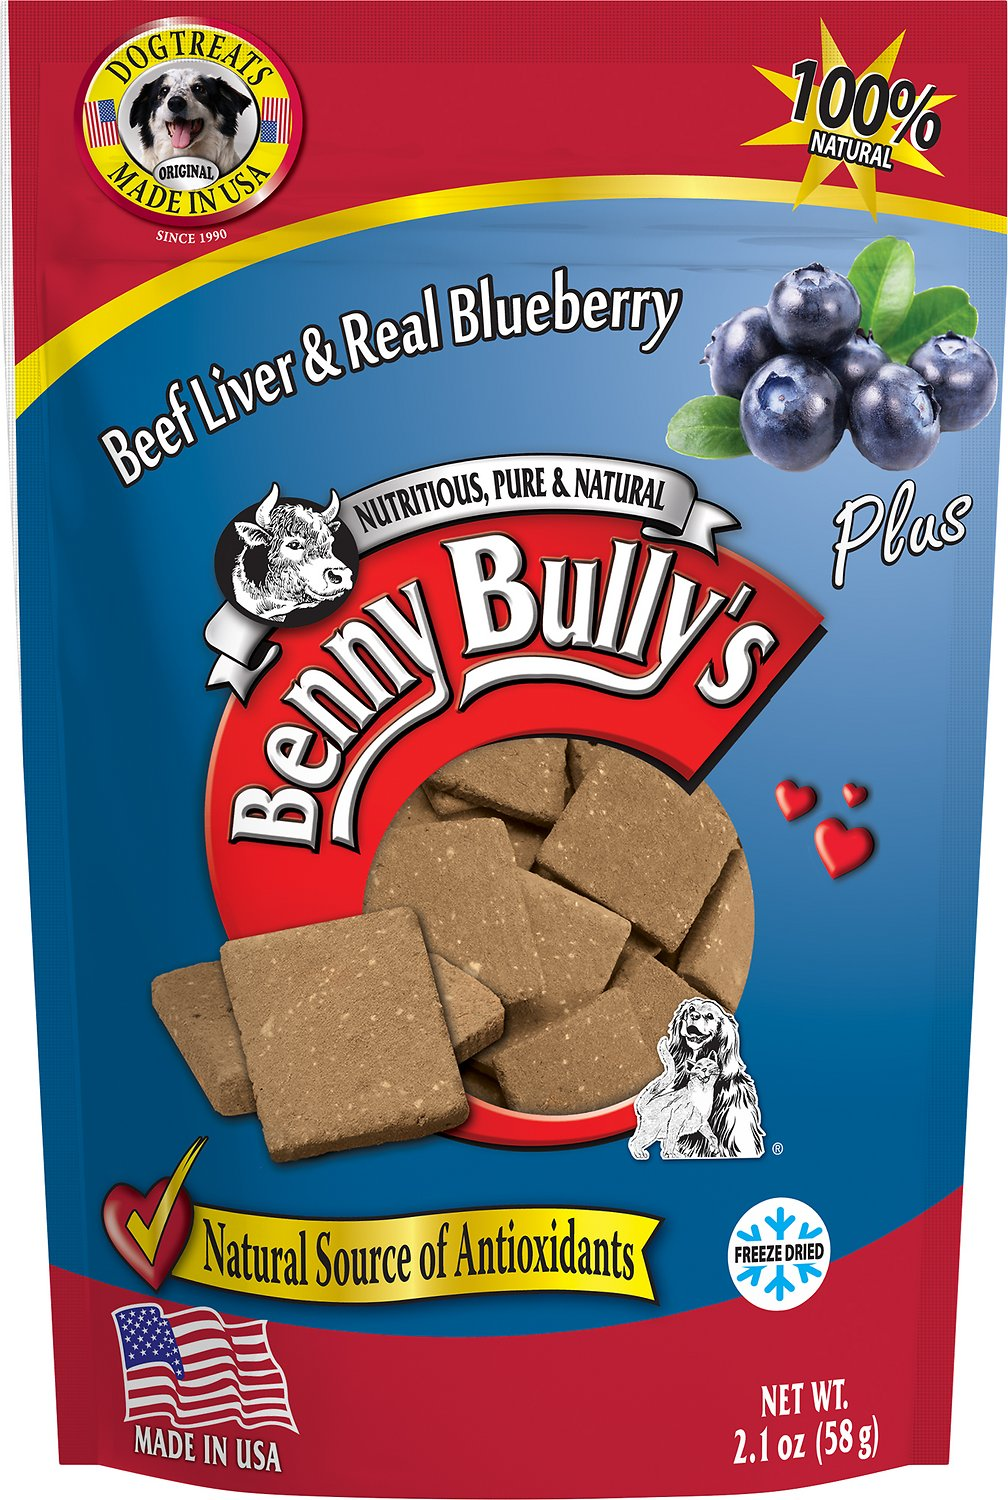 Benny Bully's Liver Plus Beef Liver & Real Blueberry Freeze-Dried Dog Treats, 2.1-oz